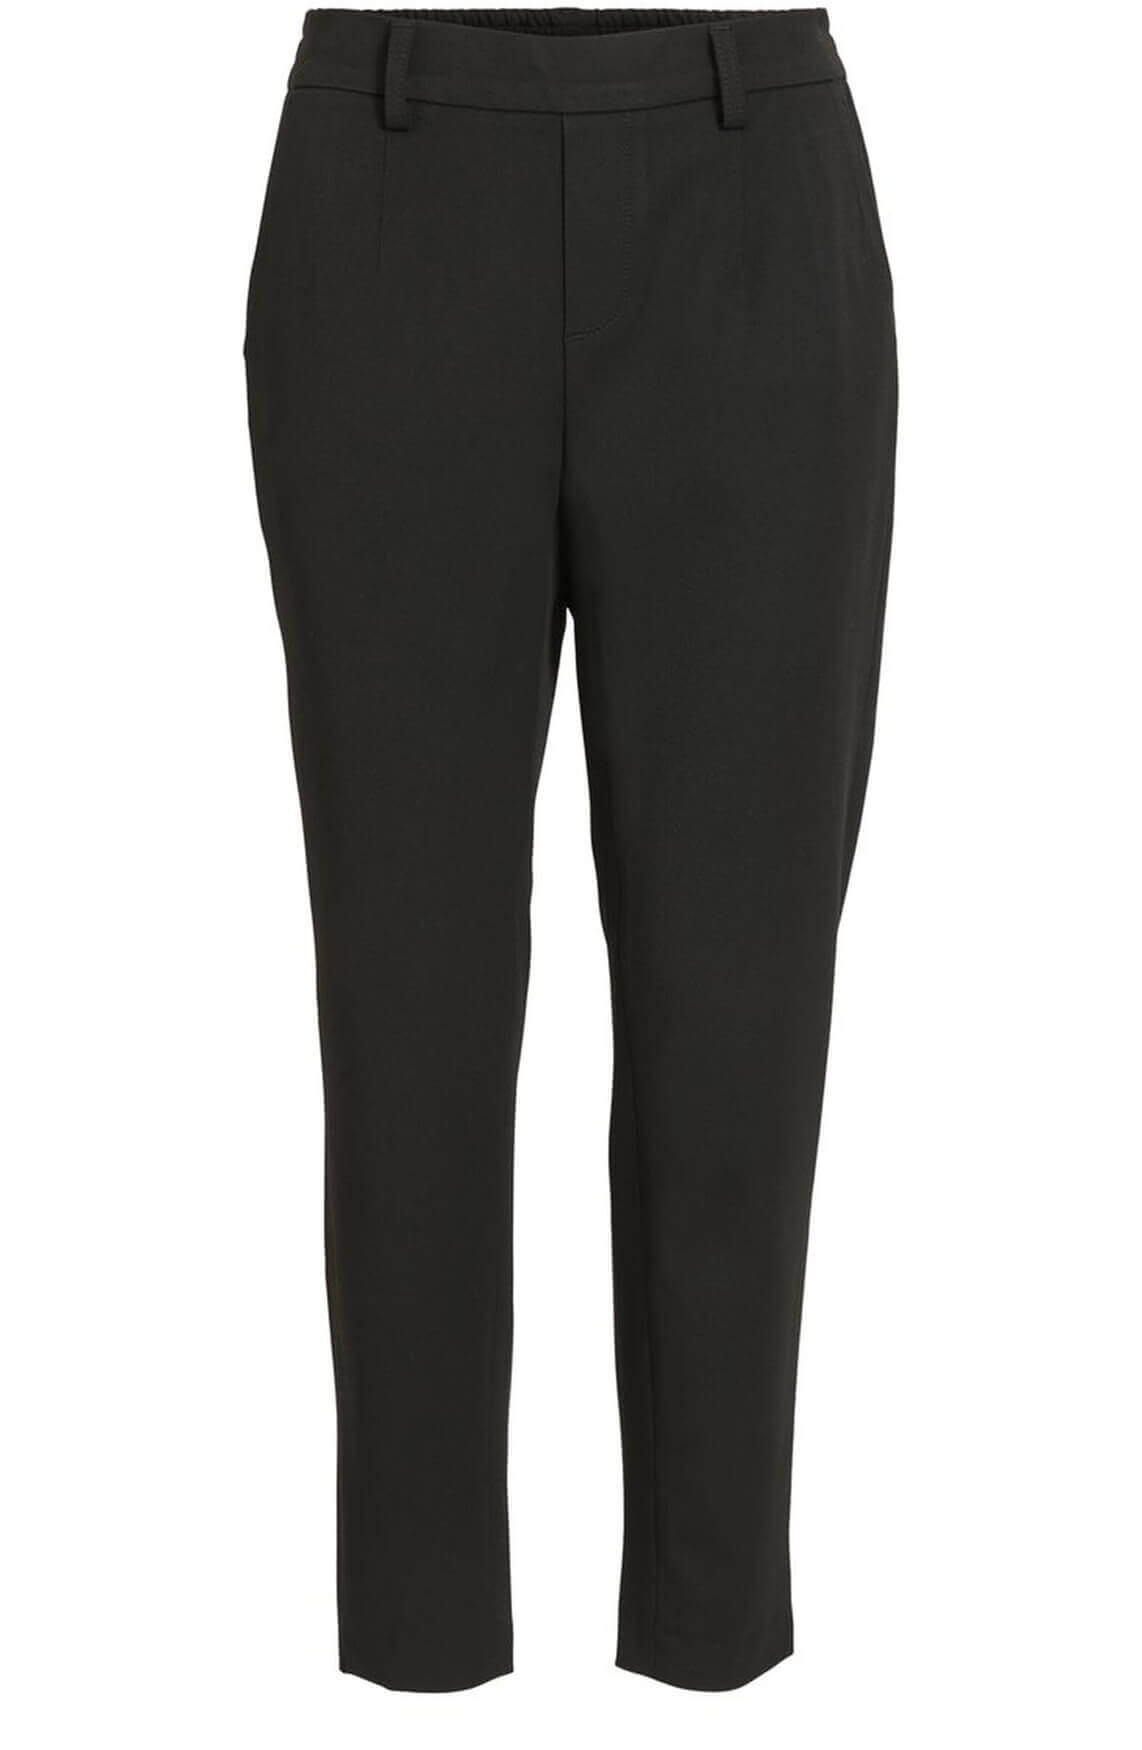 Object Dames Lisa pantalon zwart